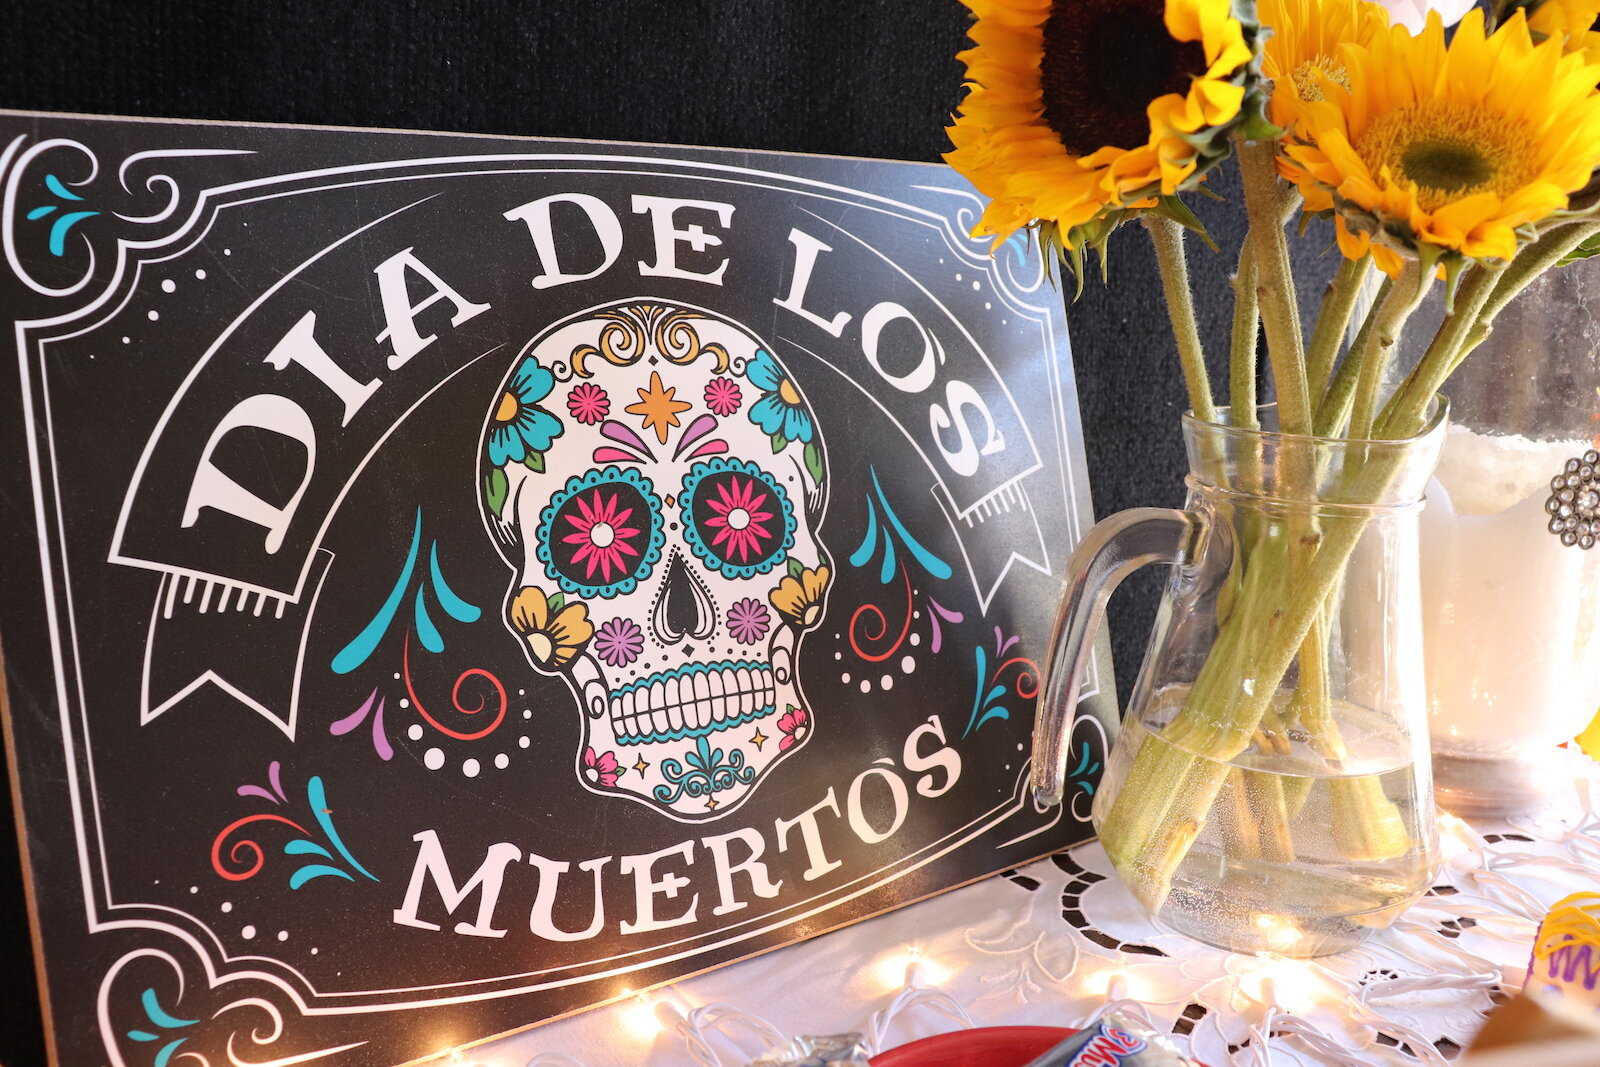 Día de los Muertos (Day of the Dead), is a multi-day celebration for lost loved ones, in which families create home altars to honor and remember their dead relatives.